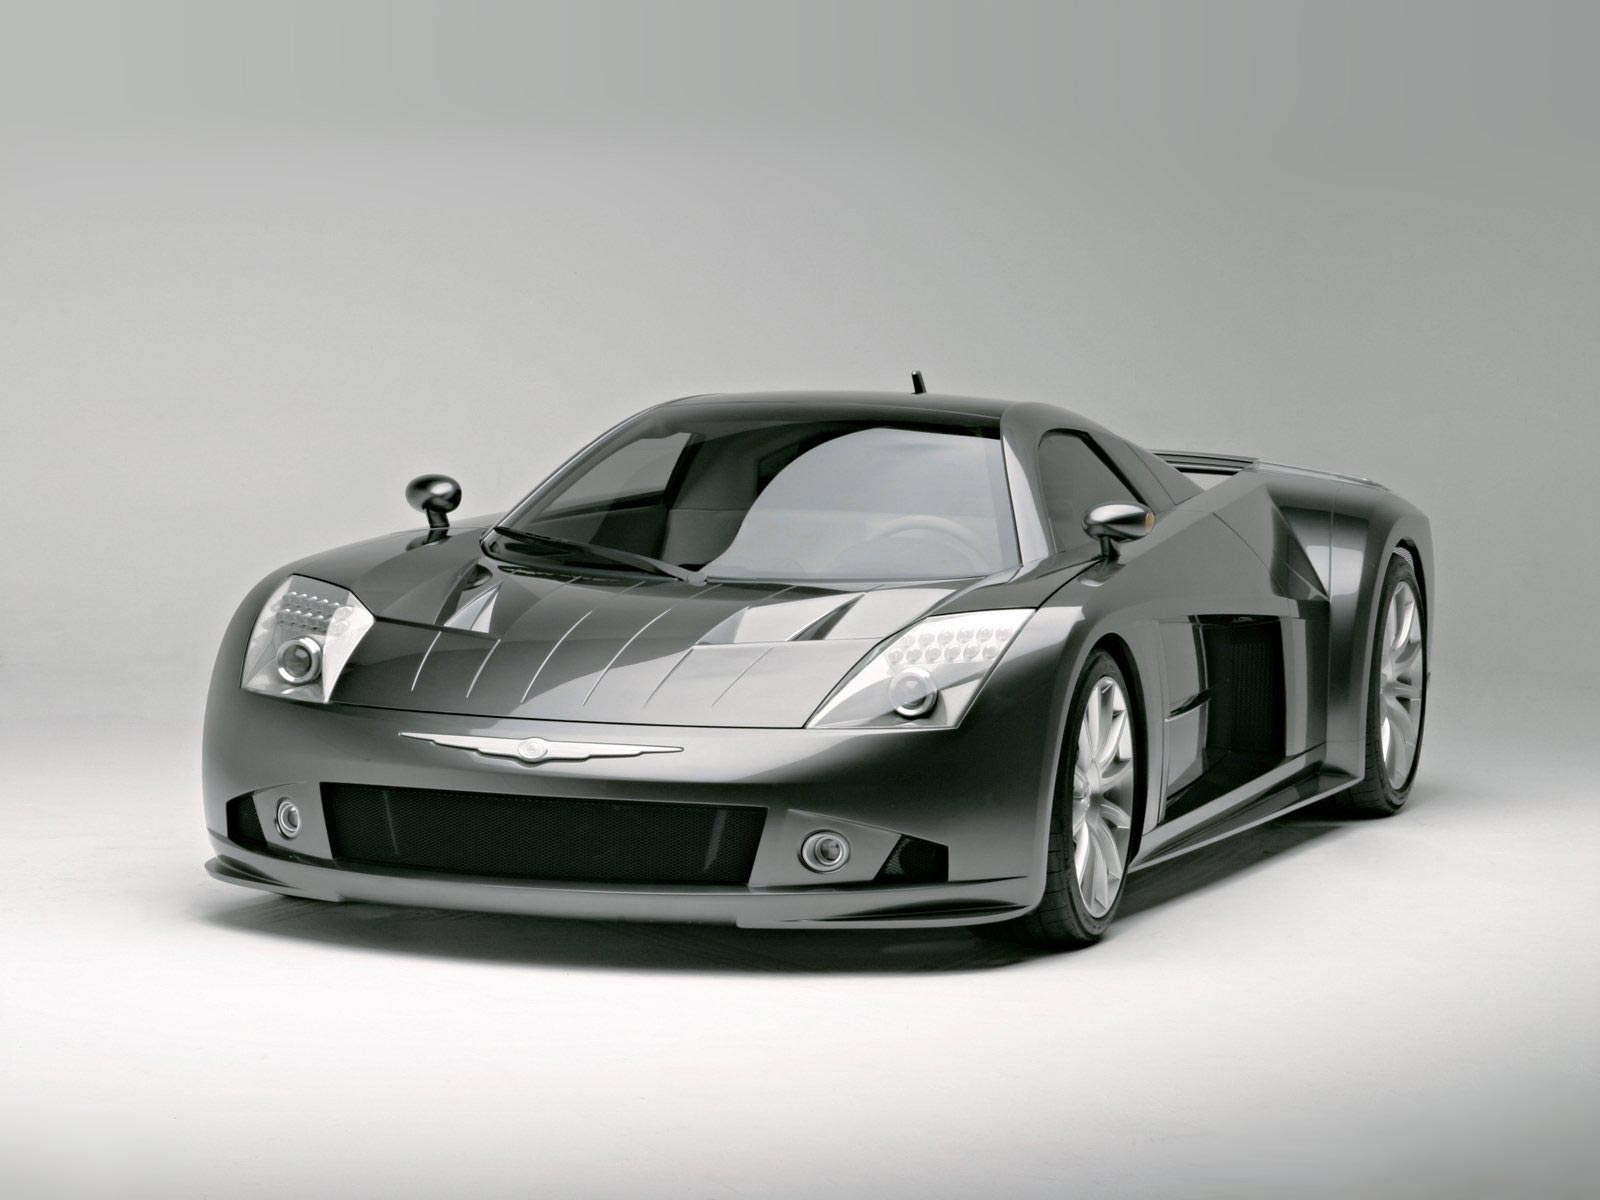 Chrysler ME412 2